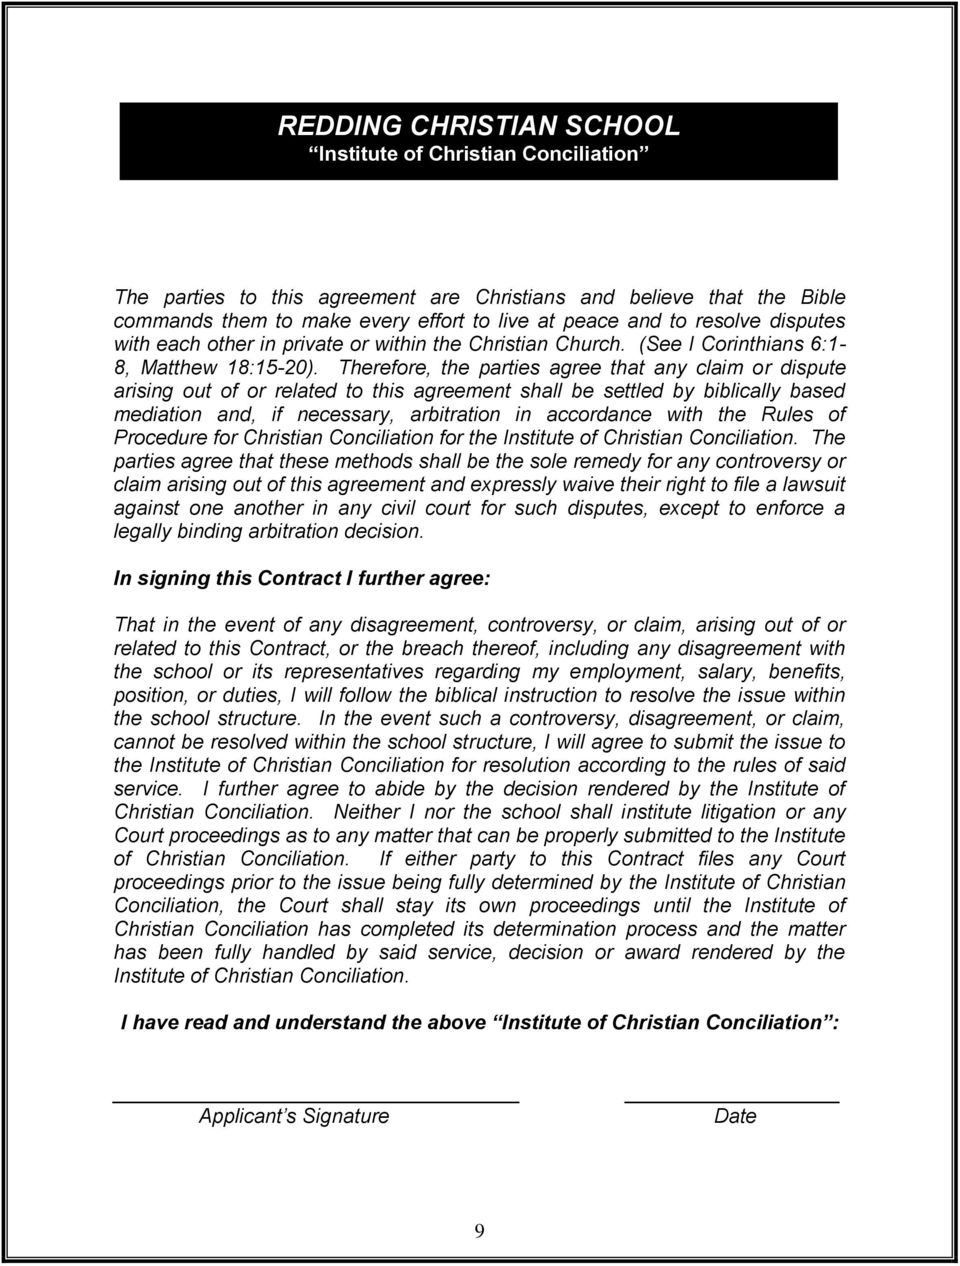 Therefore, the parties agree that any claim or dispute arising out of or related to this agreement shall be settled by biblically based mediation and, if necessary, arbitration in accordance with the